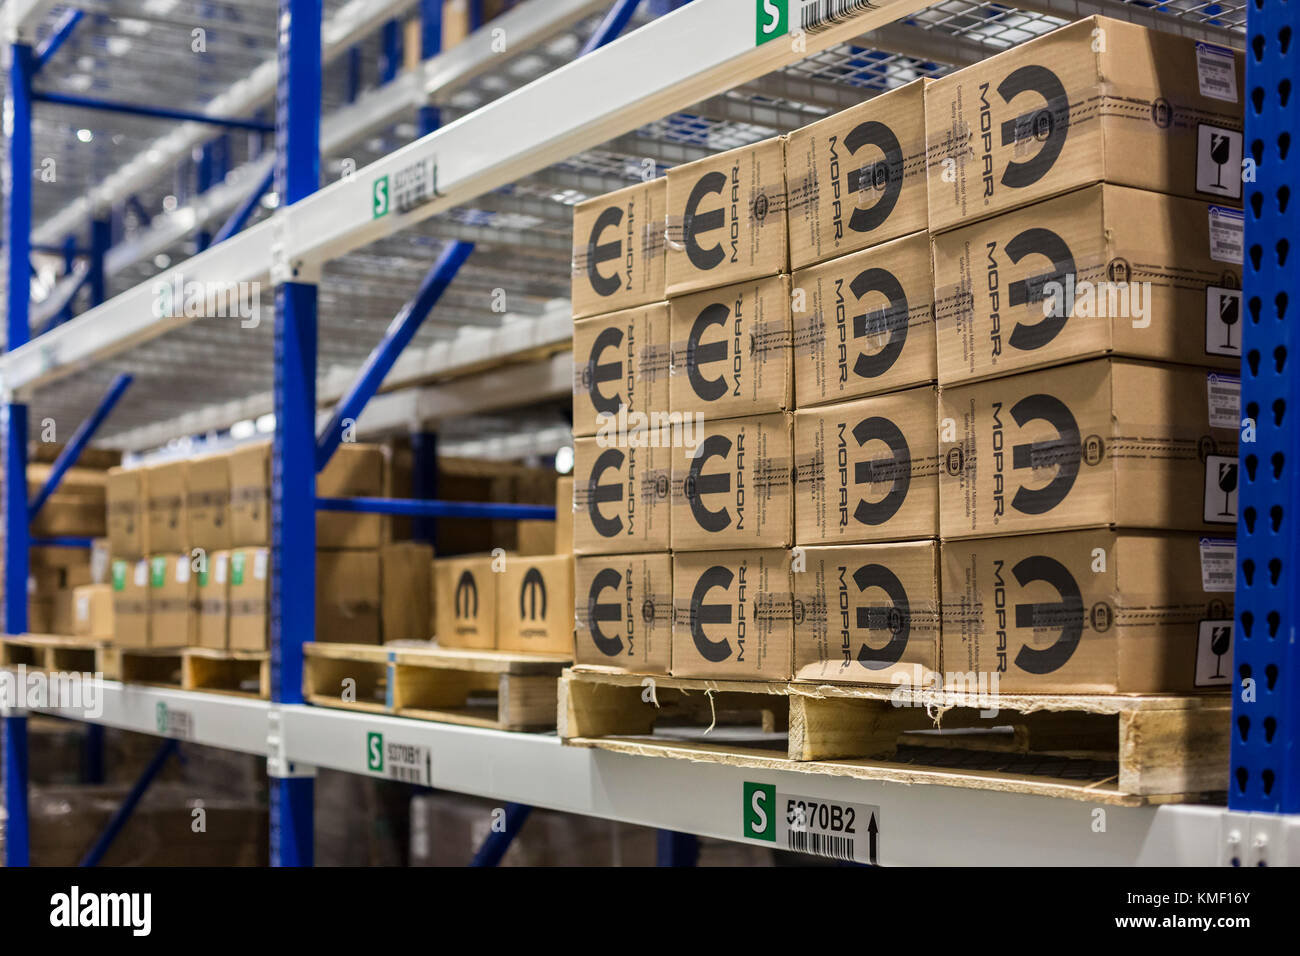 Romulus, Michigan - A Mopar auto parts distribution center. Mopar is the auto parts operation of Fiat Chrysler Automobiles. - Stock Image